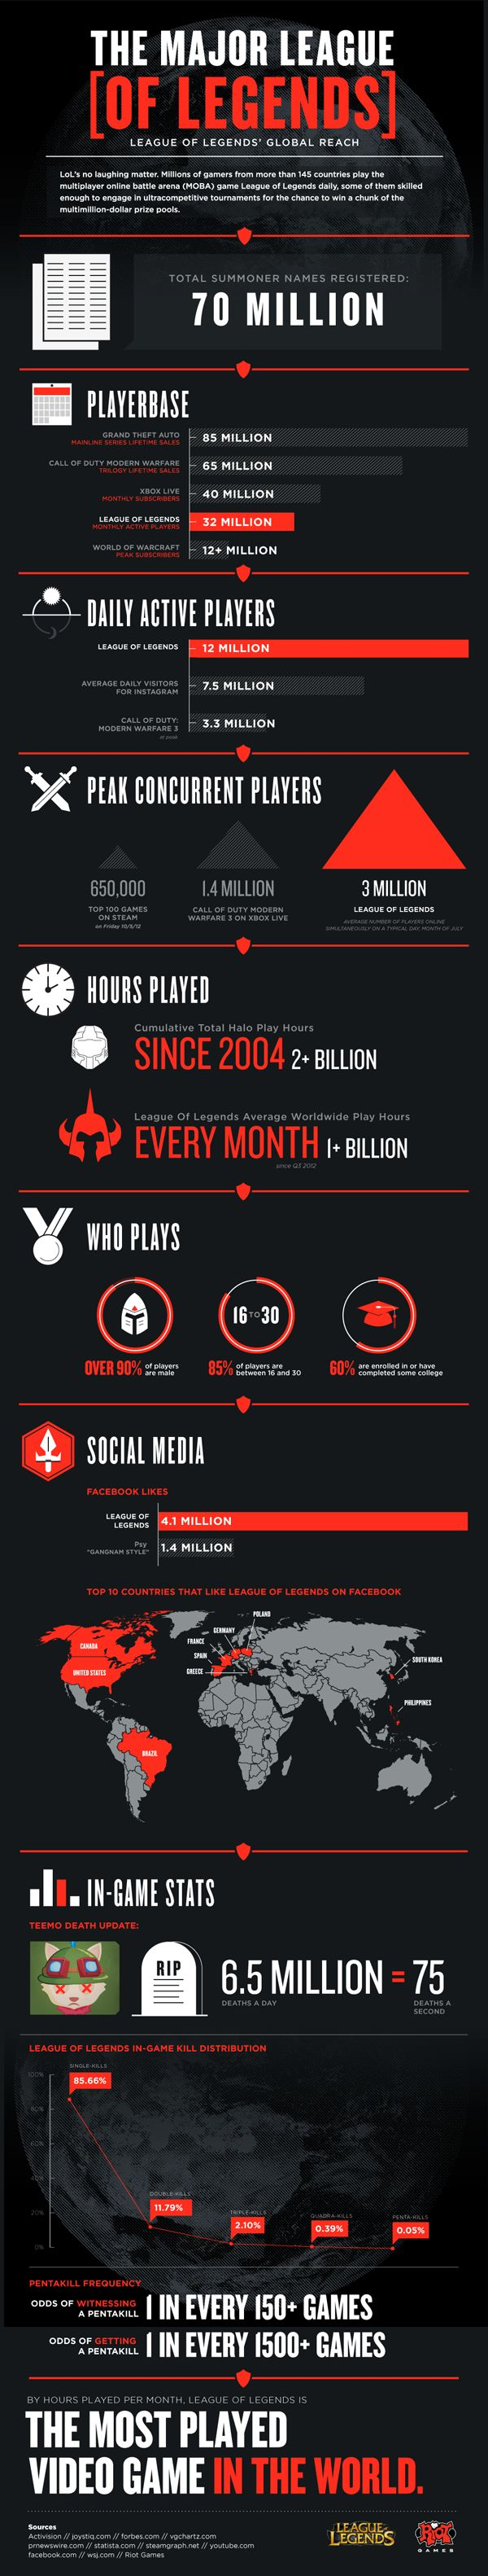 League Of Legends | Happy Gaming! Ideal Games. Search hundreds of free online games @ puzzleplay.com dressupnation.com